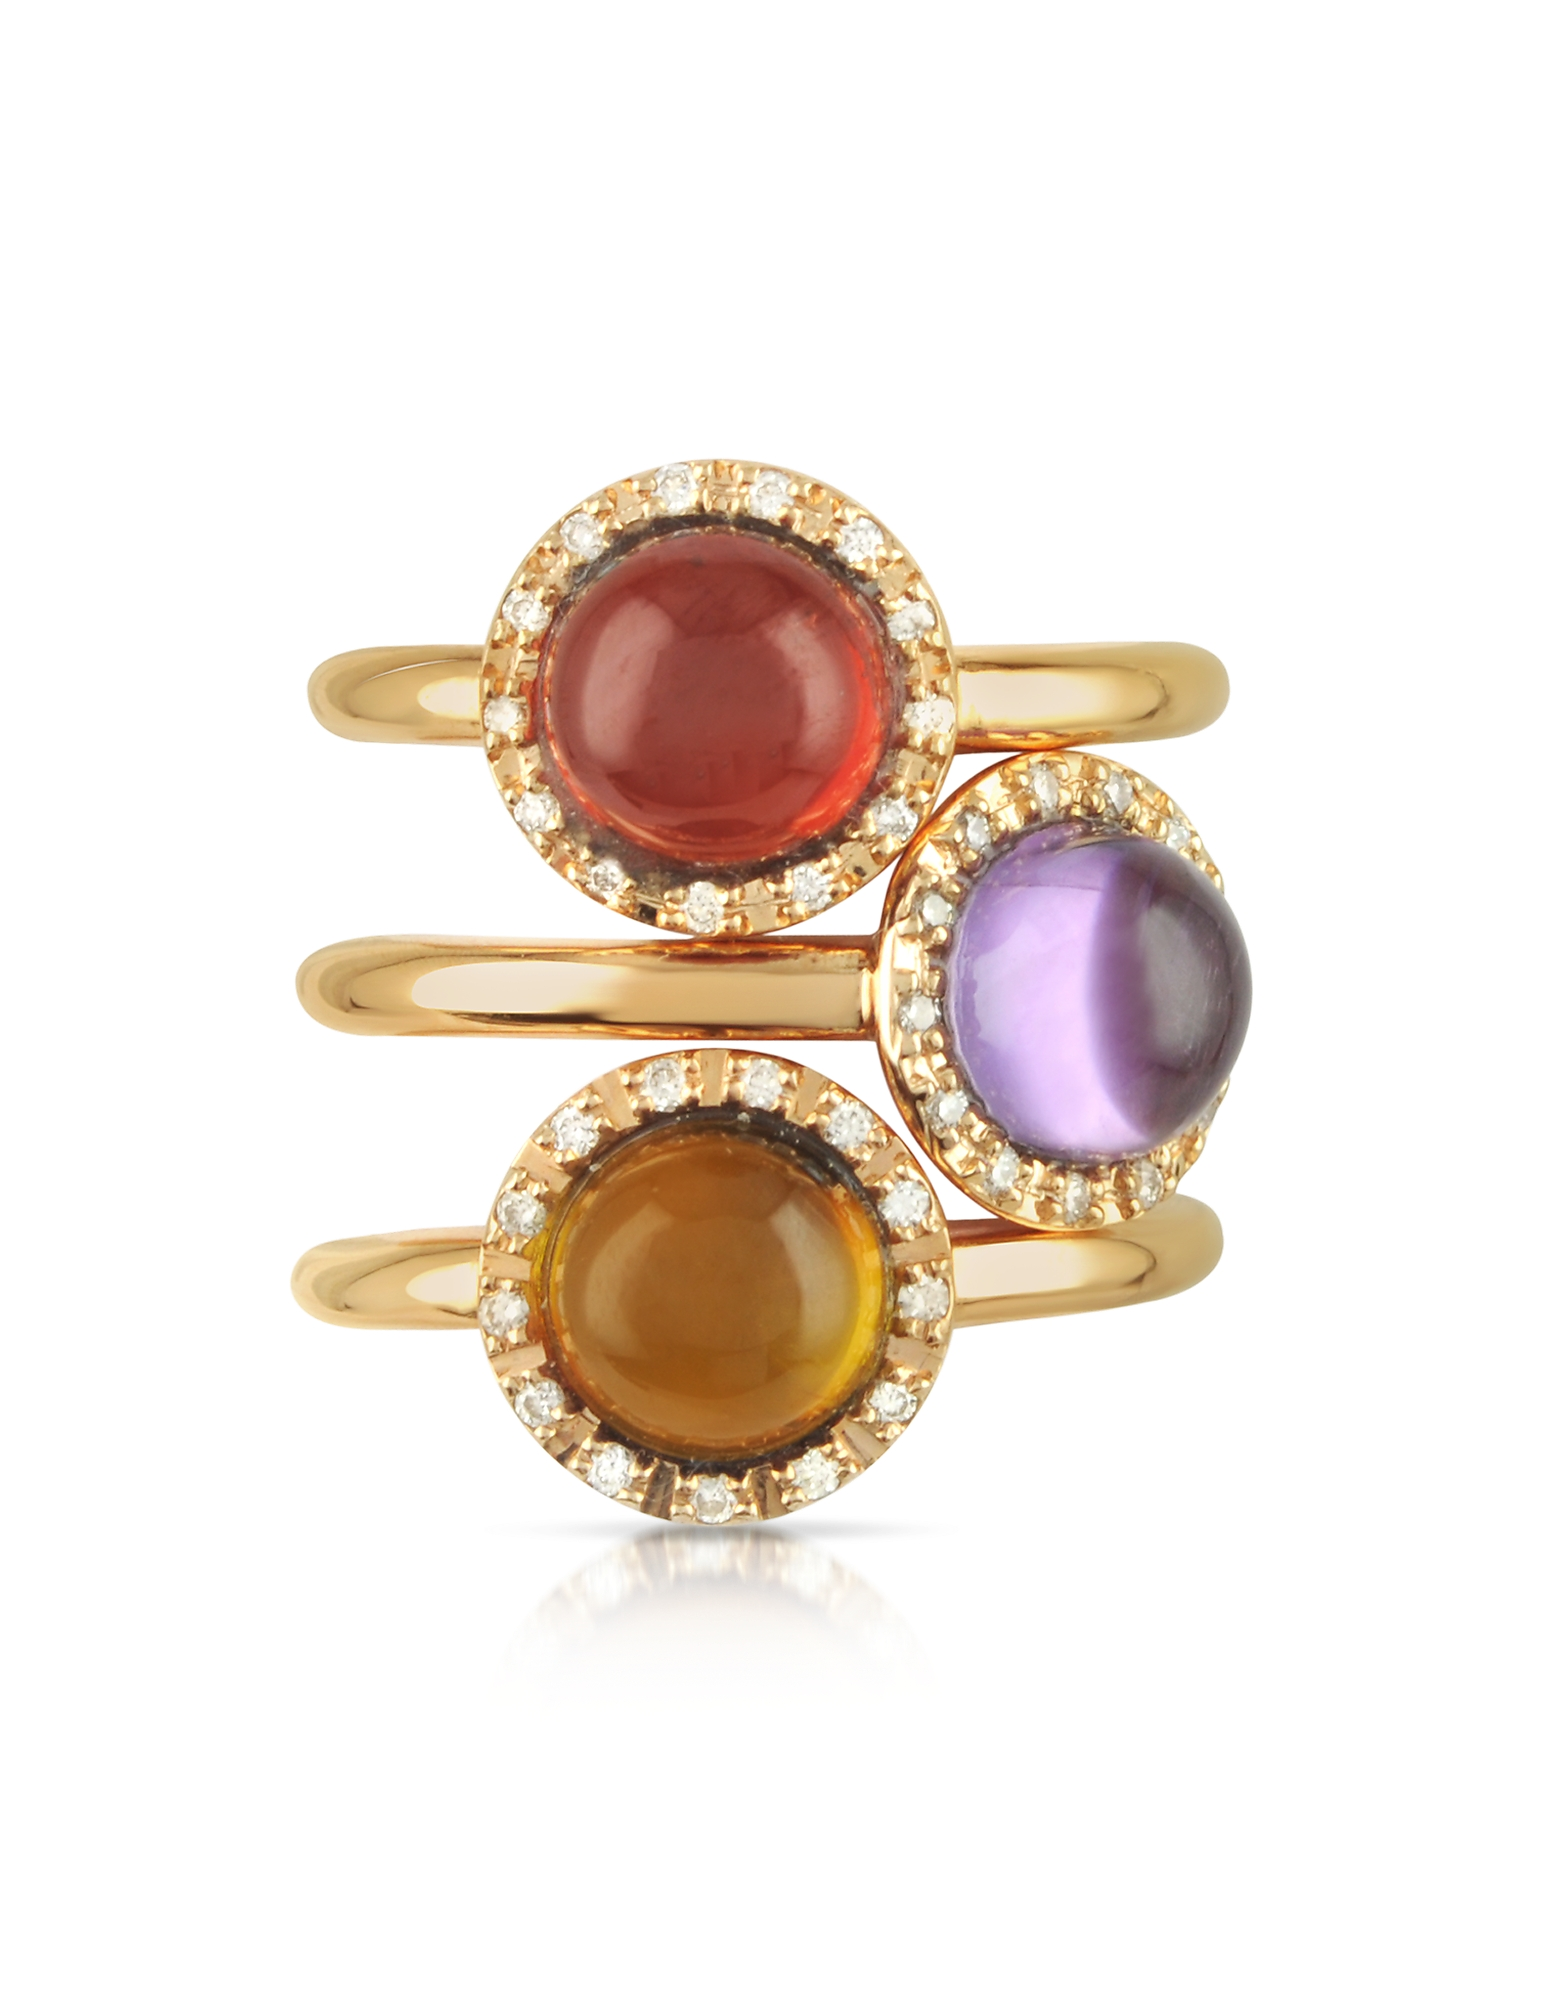 Mia & Beverly Rings, Gemstone and Diamond 18K Rose Gold Ring